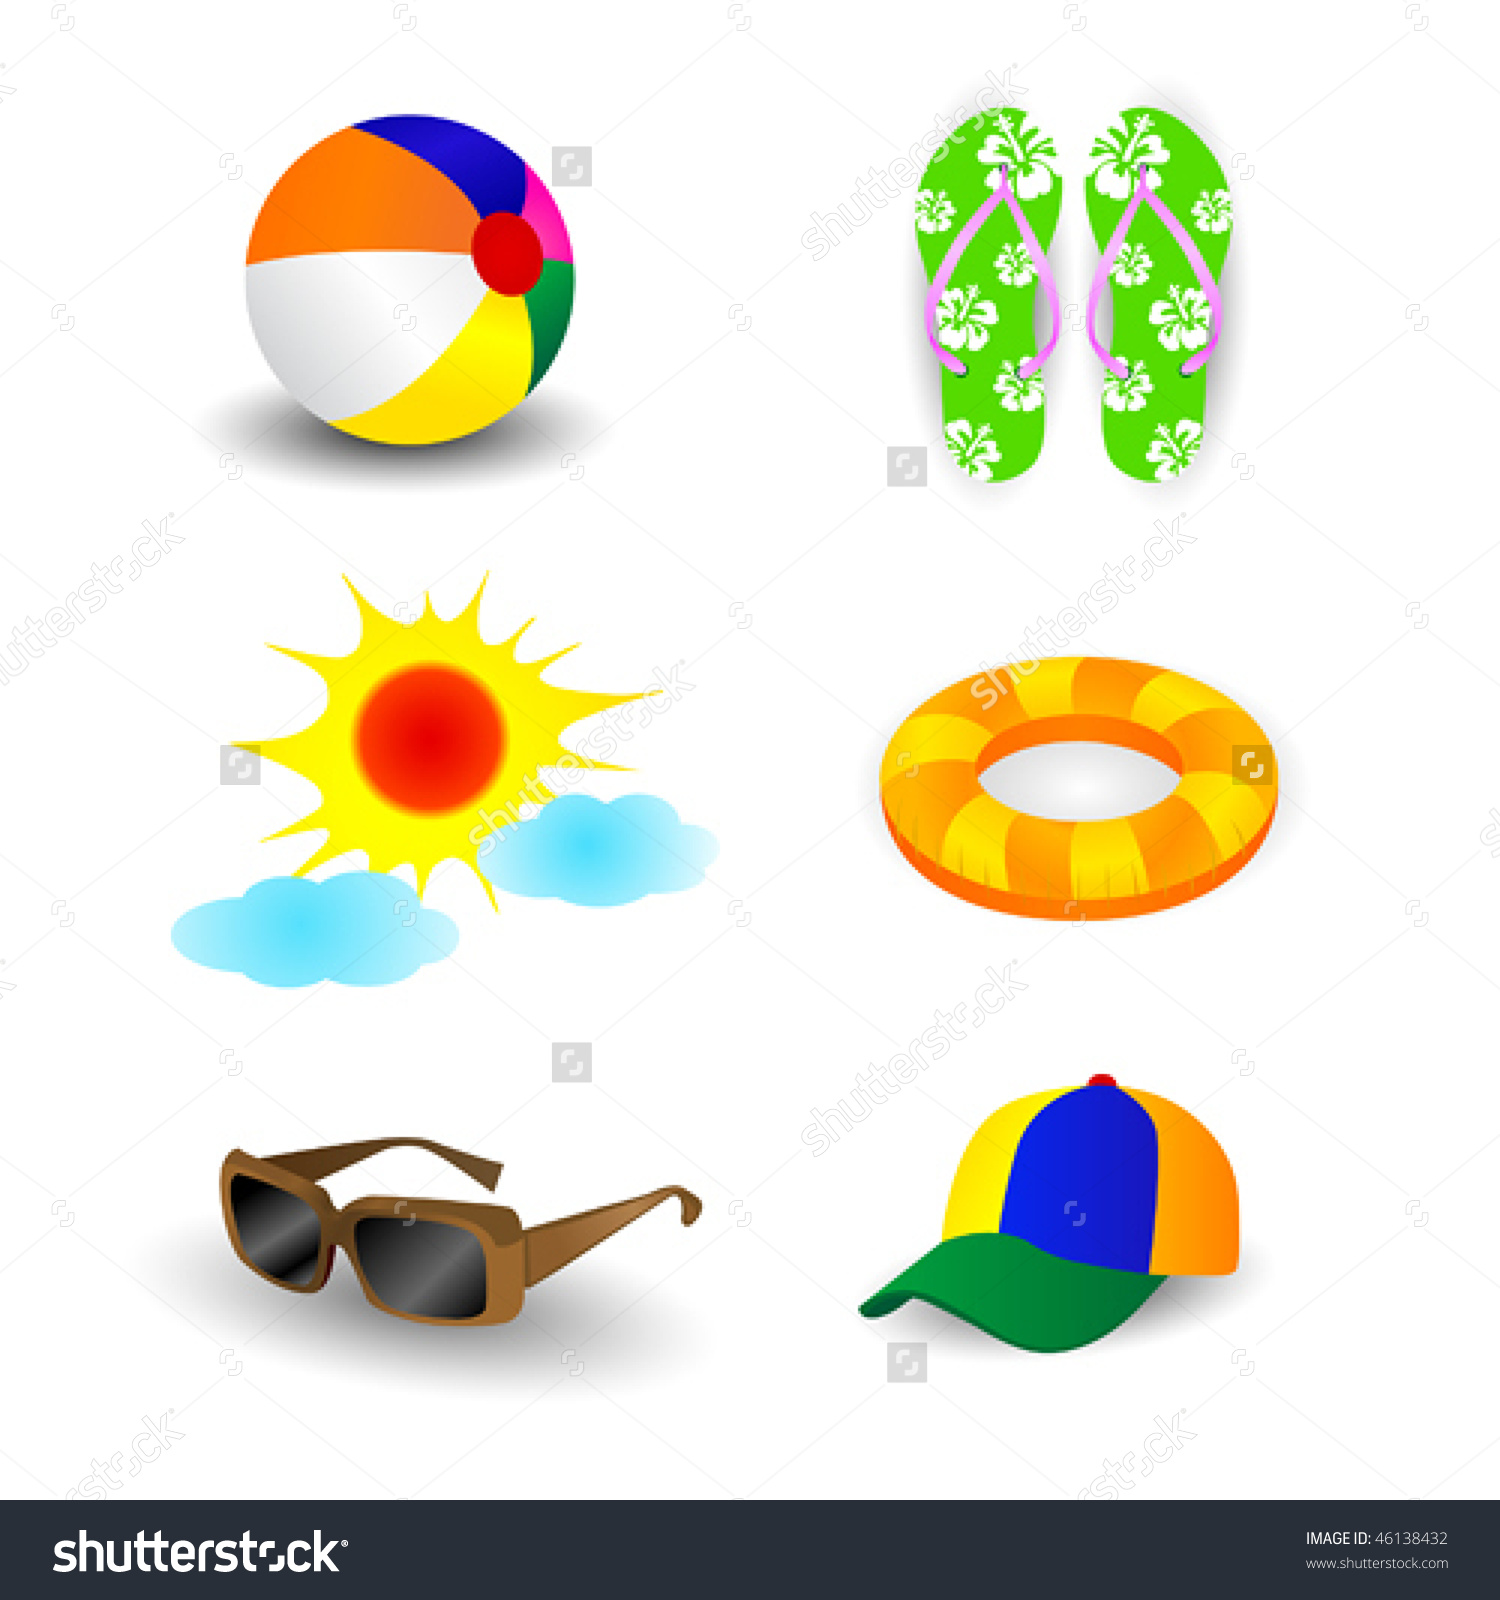 1500x1600 Sunglasses beach ball clipart, explore pictures